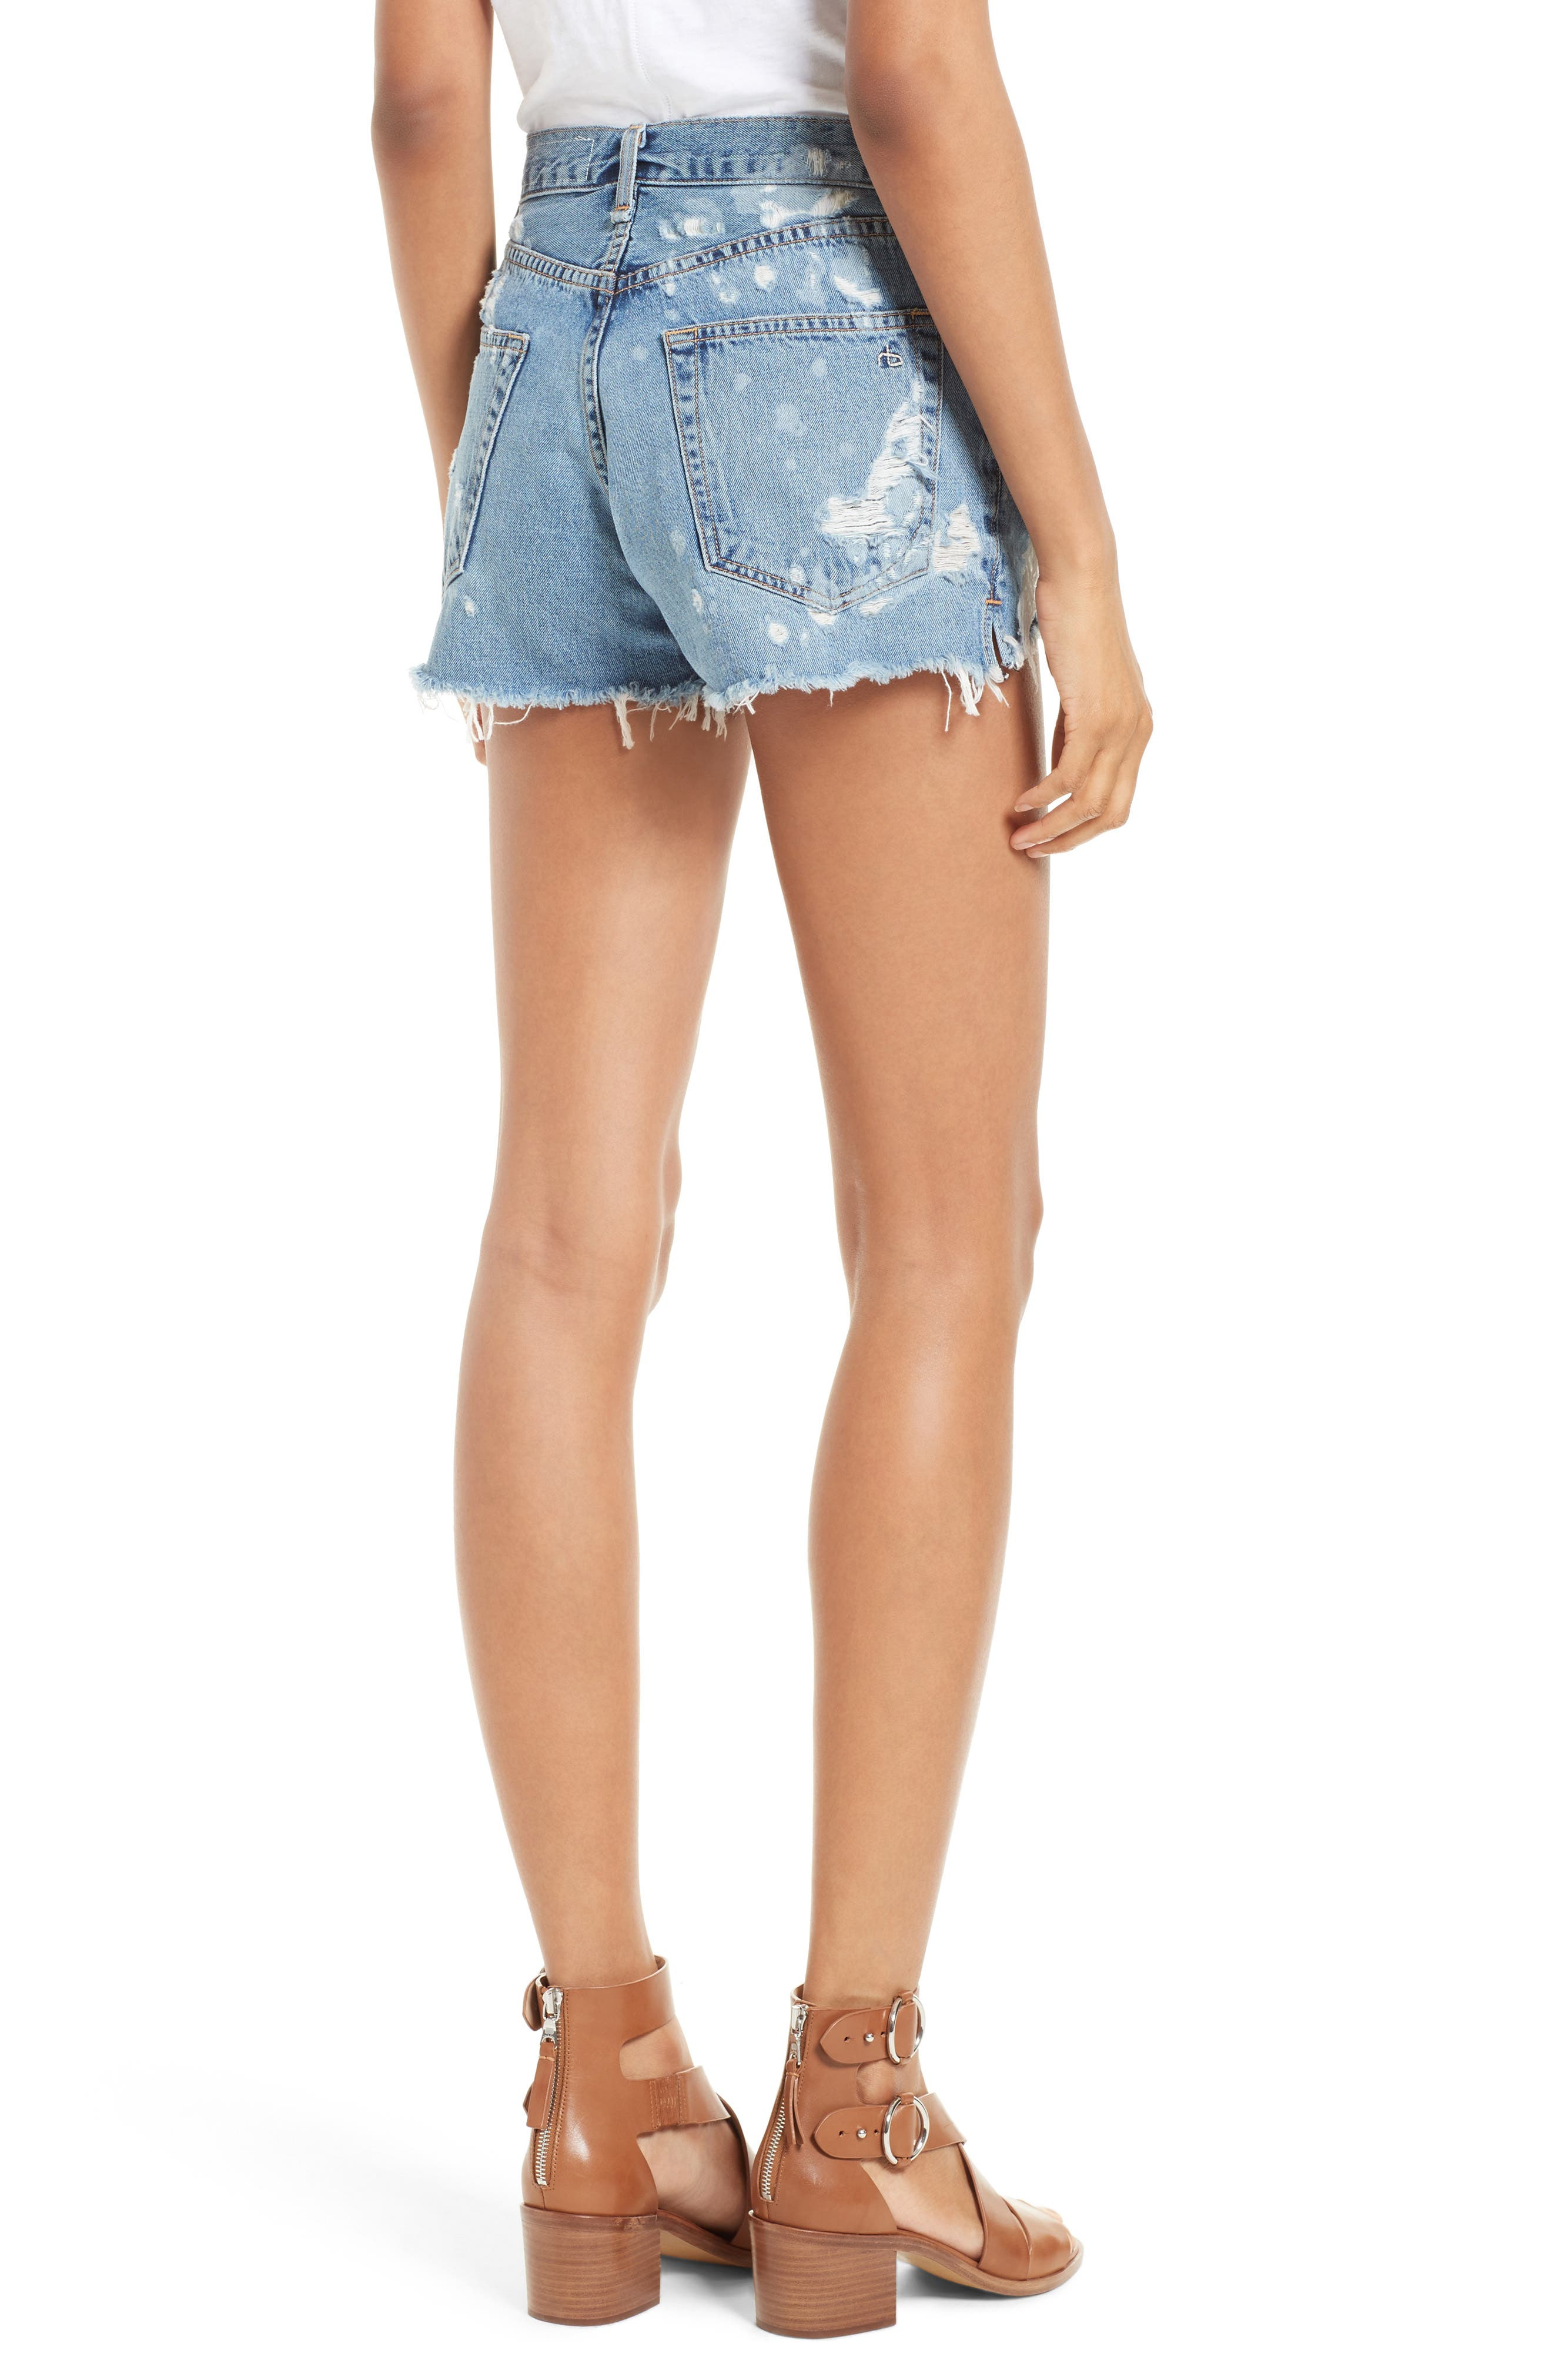 Justine High Waist Cutoff Denim Shorts,                             Alternate thumbnail 2, color,                             422